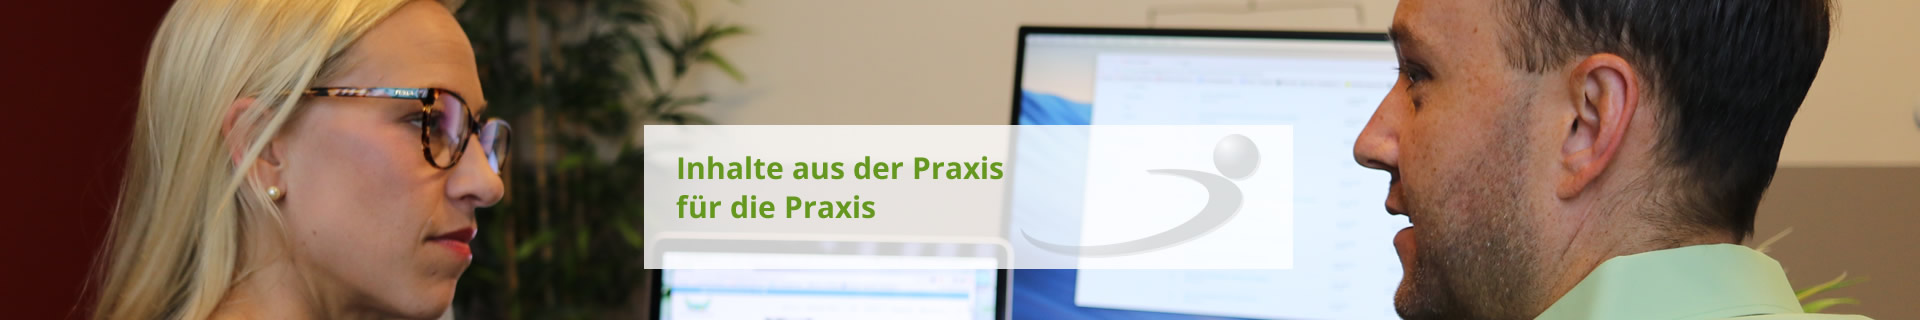 Aus der Praxis für die Praxis